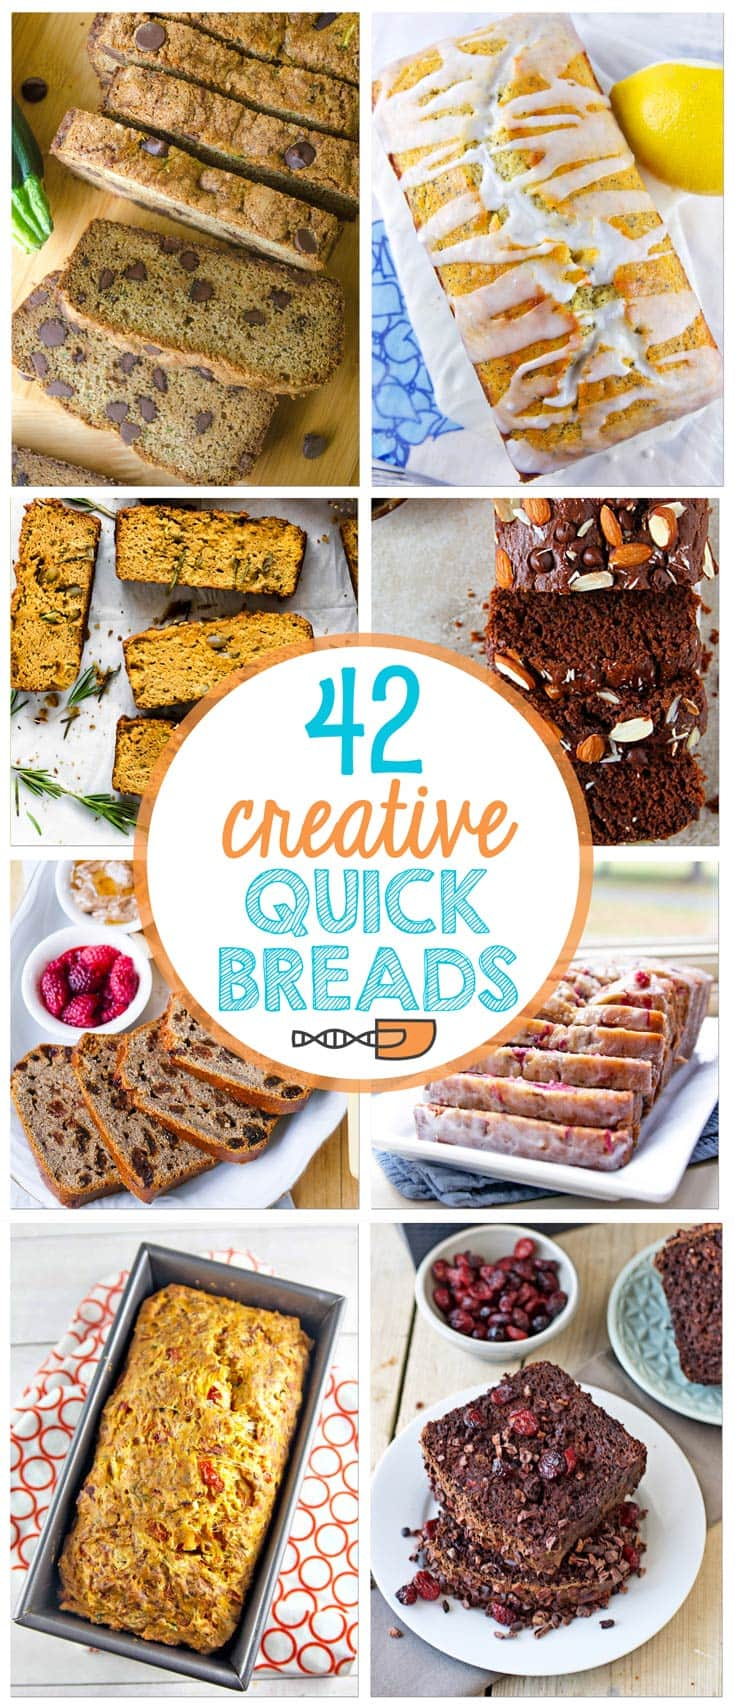 If you think quick bread and automatically assume banana bread - no way.  Expand your baking horizons with these 42 creative quick breads!